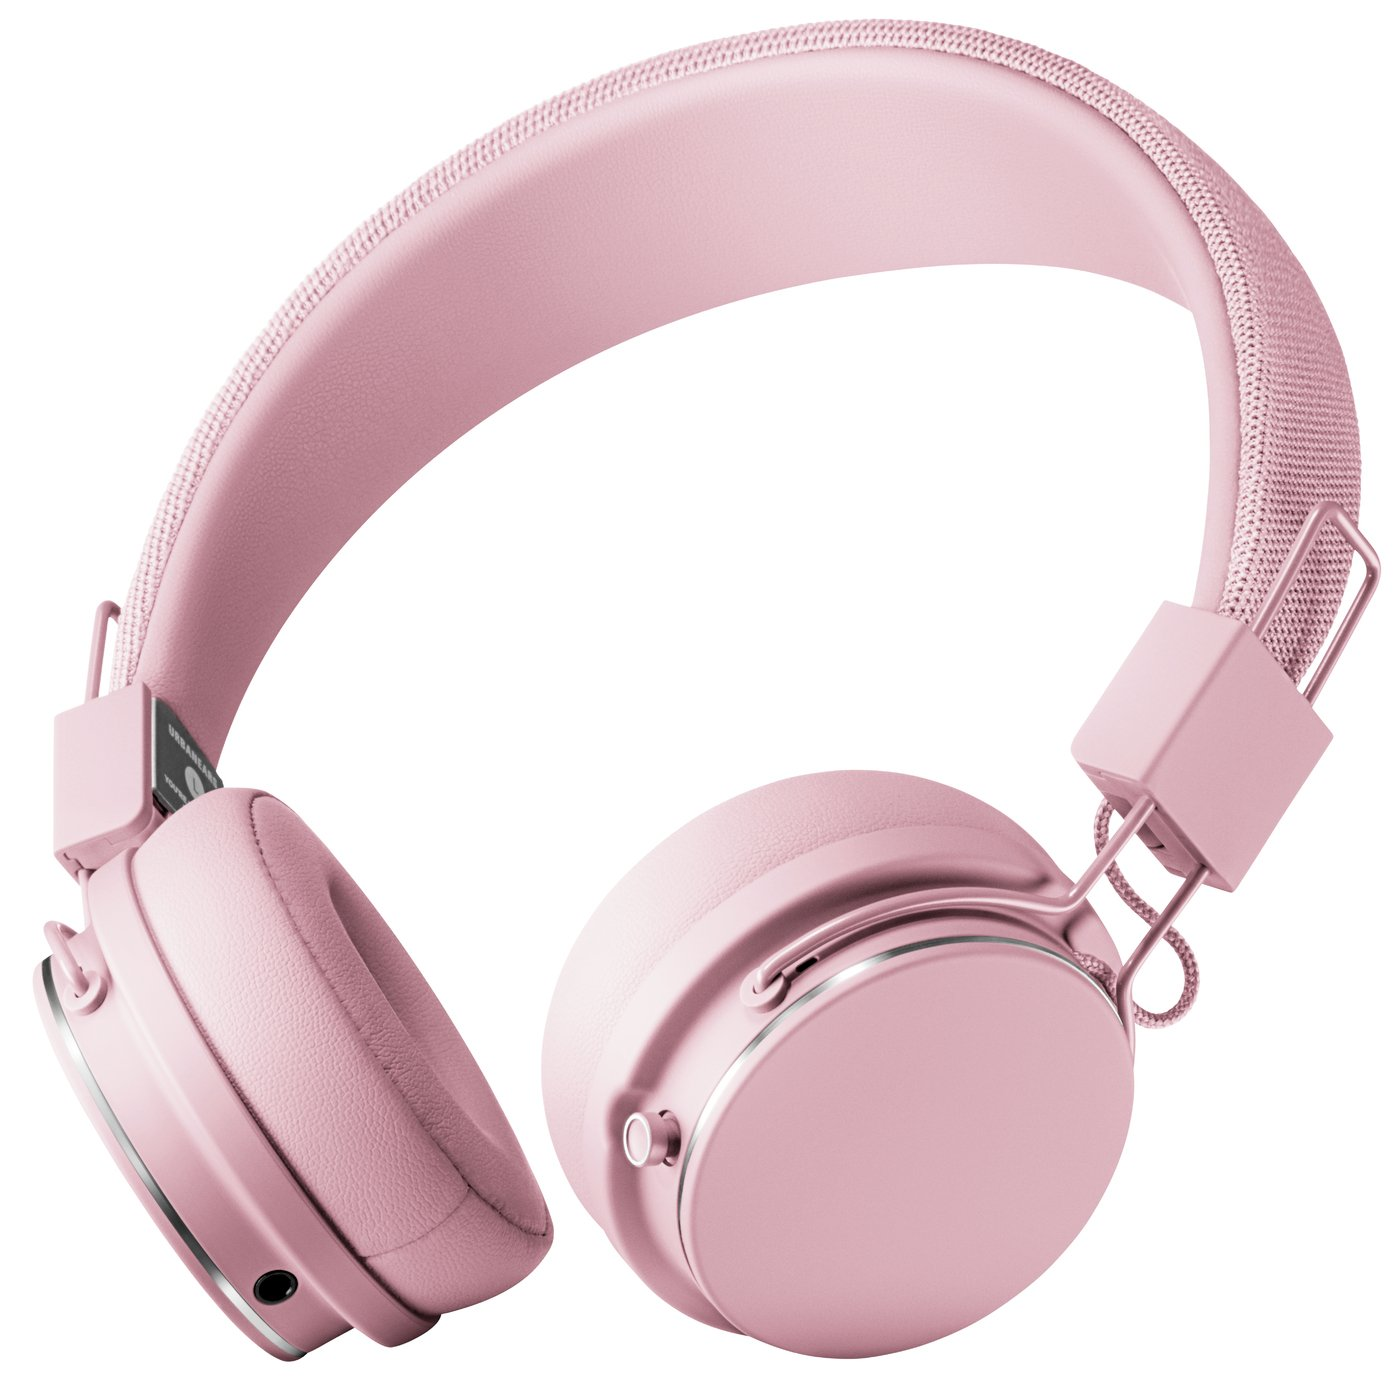 Urbanears Plattan 2 On-Ear Bluetooth Headphones - Pink